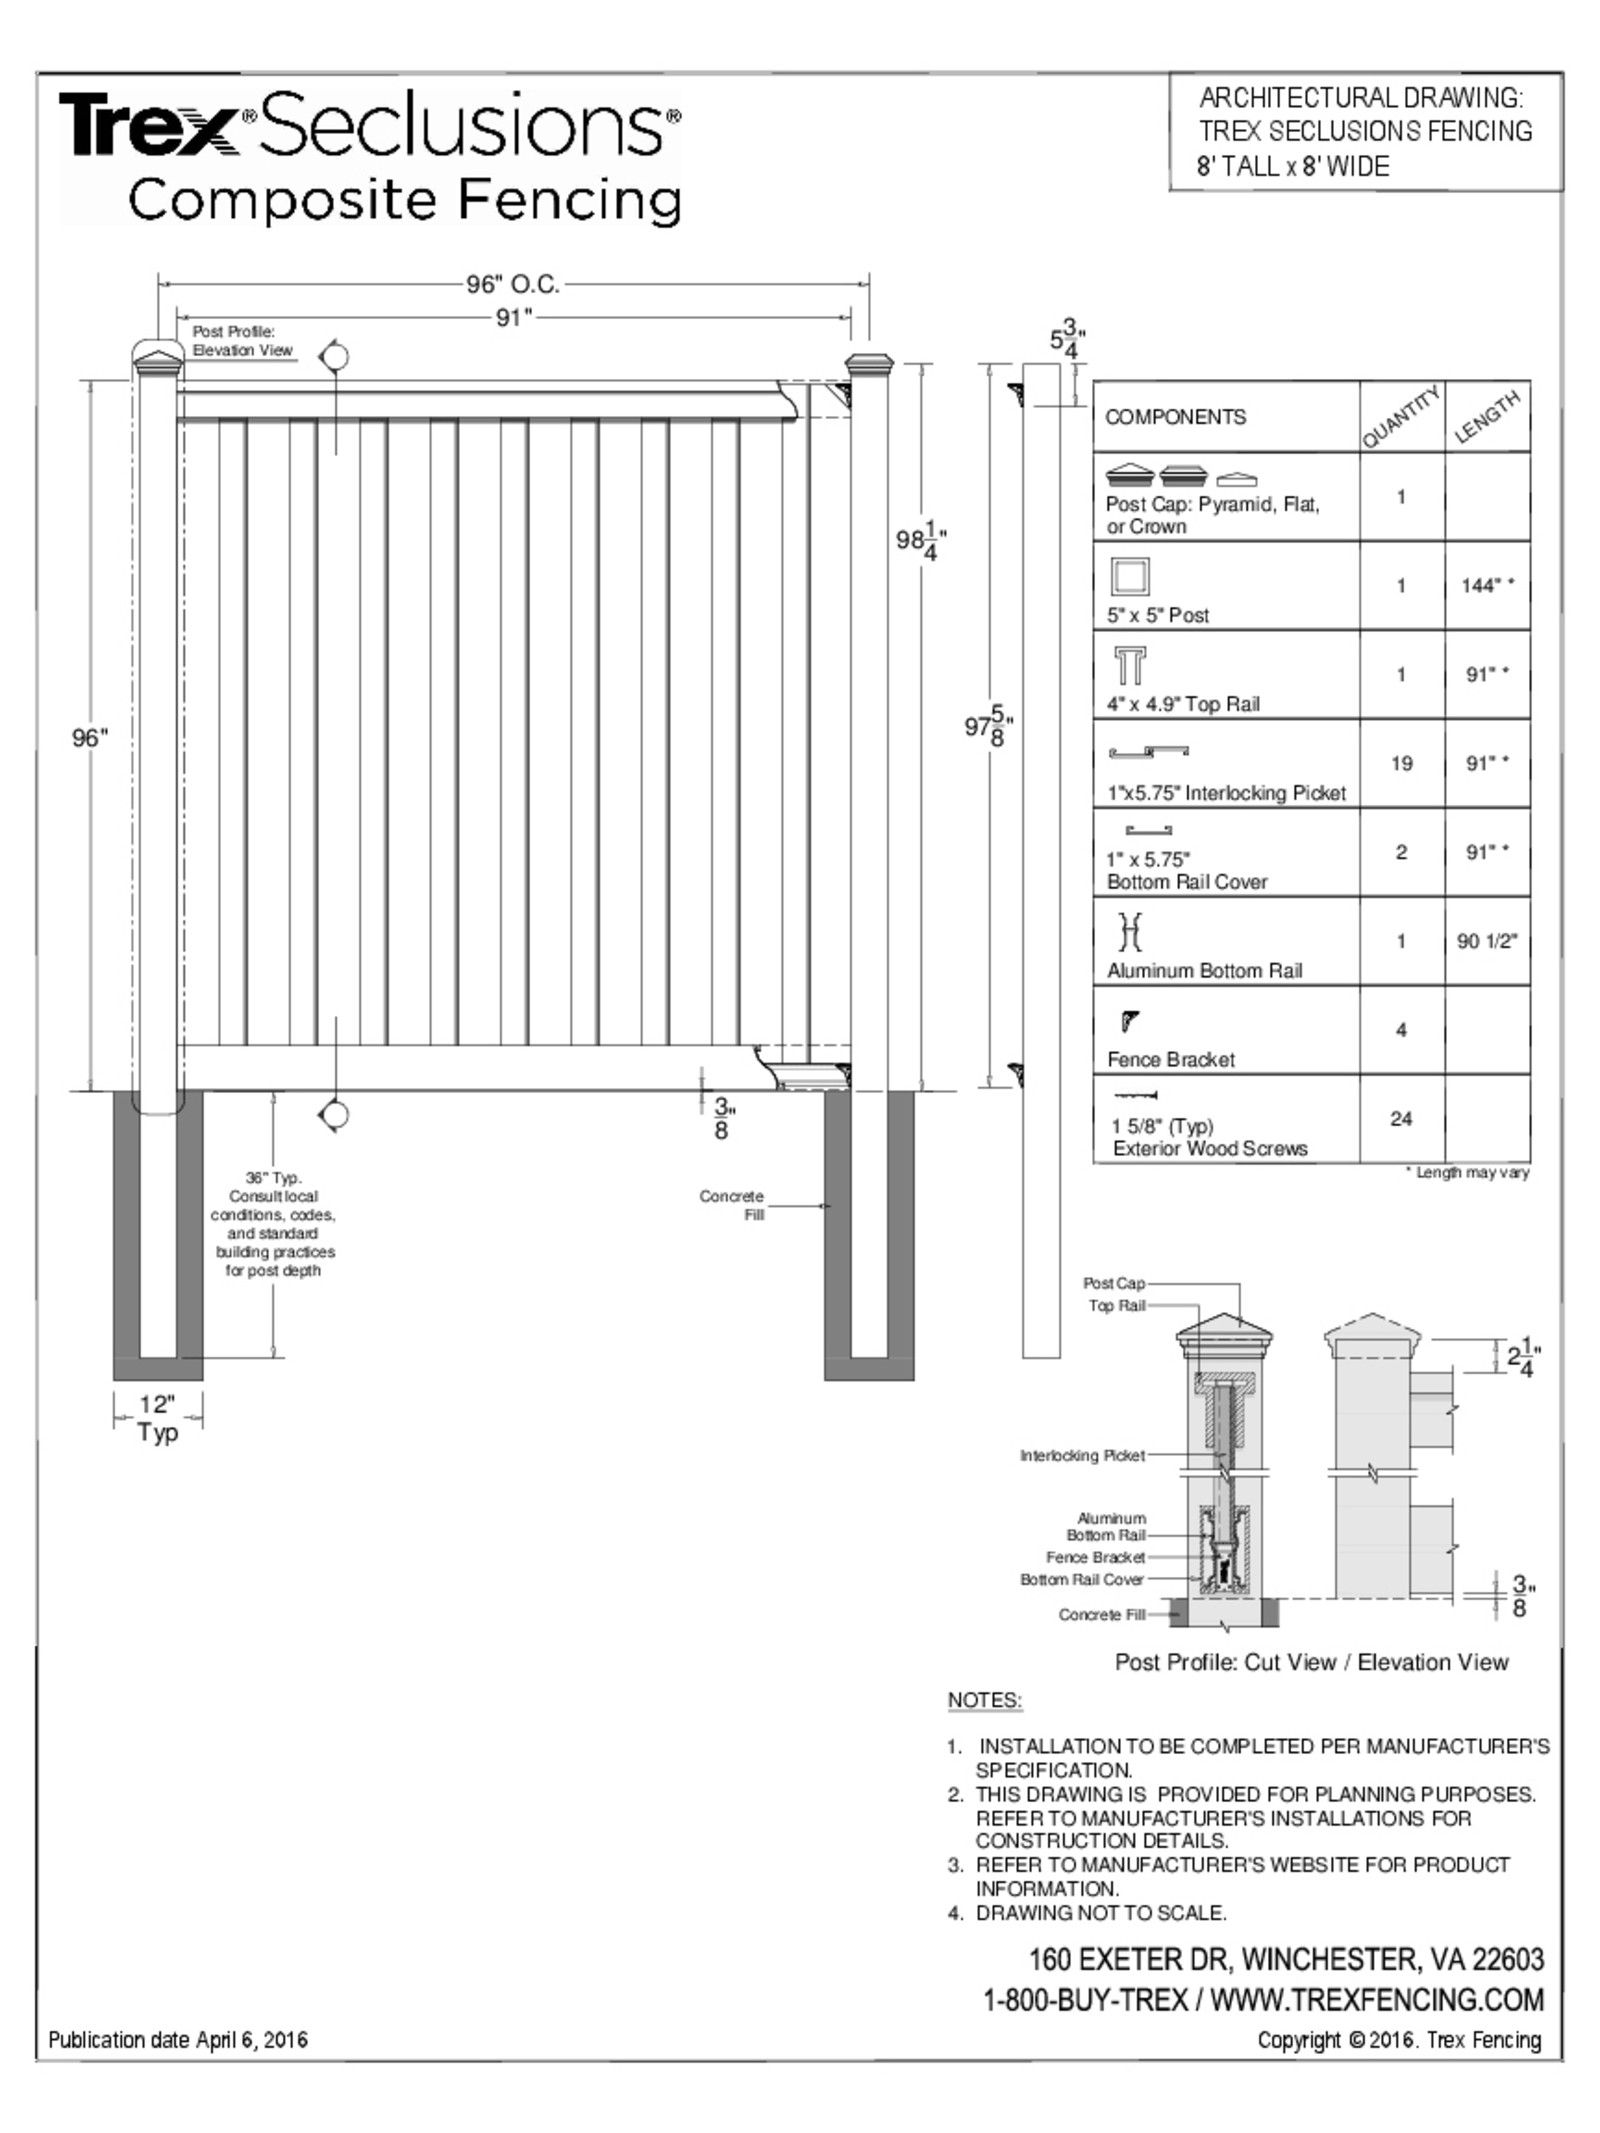 New Swing Auto Gate Wiring Diagram Gate Diagram Composite Fencing